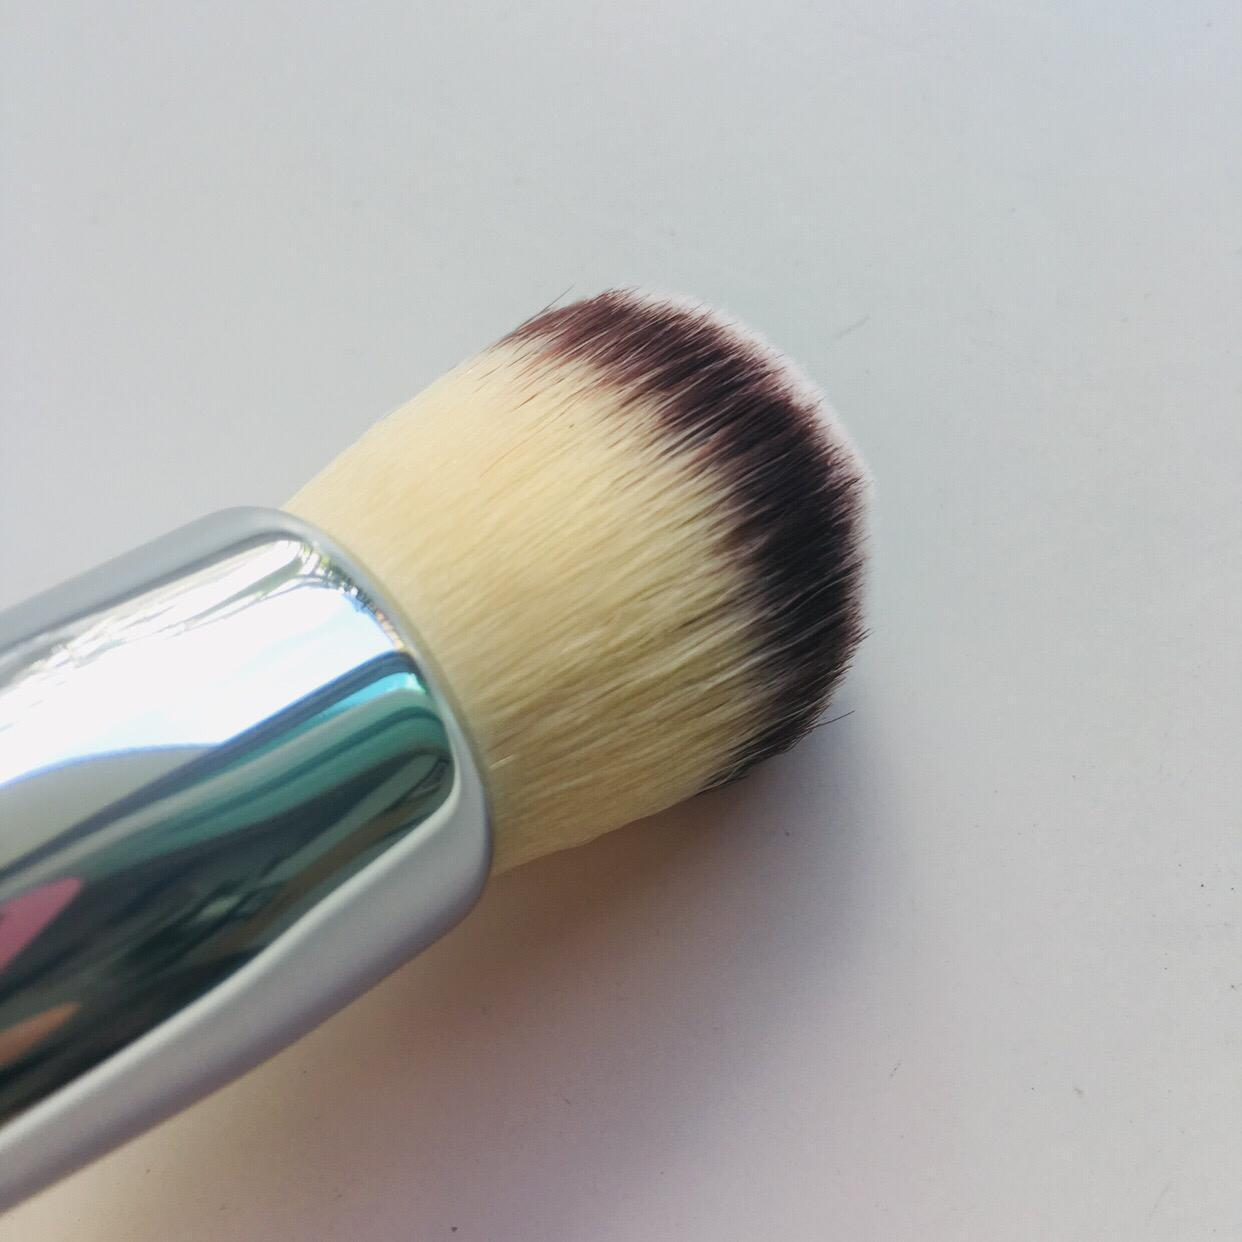 IT Cosmetics Love Beauty Fully Buffing Mineral Powder Brush #206